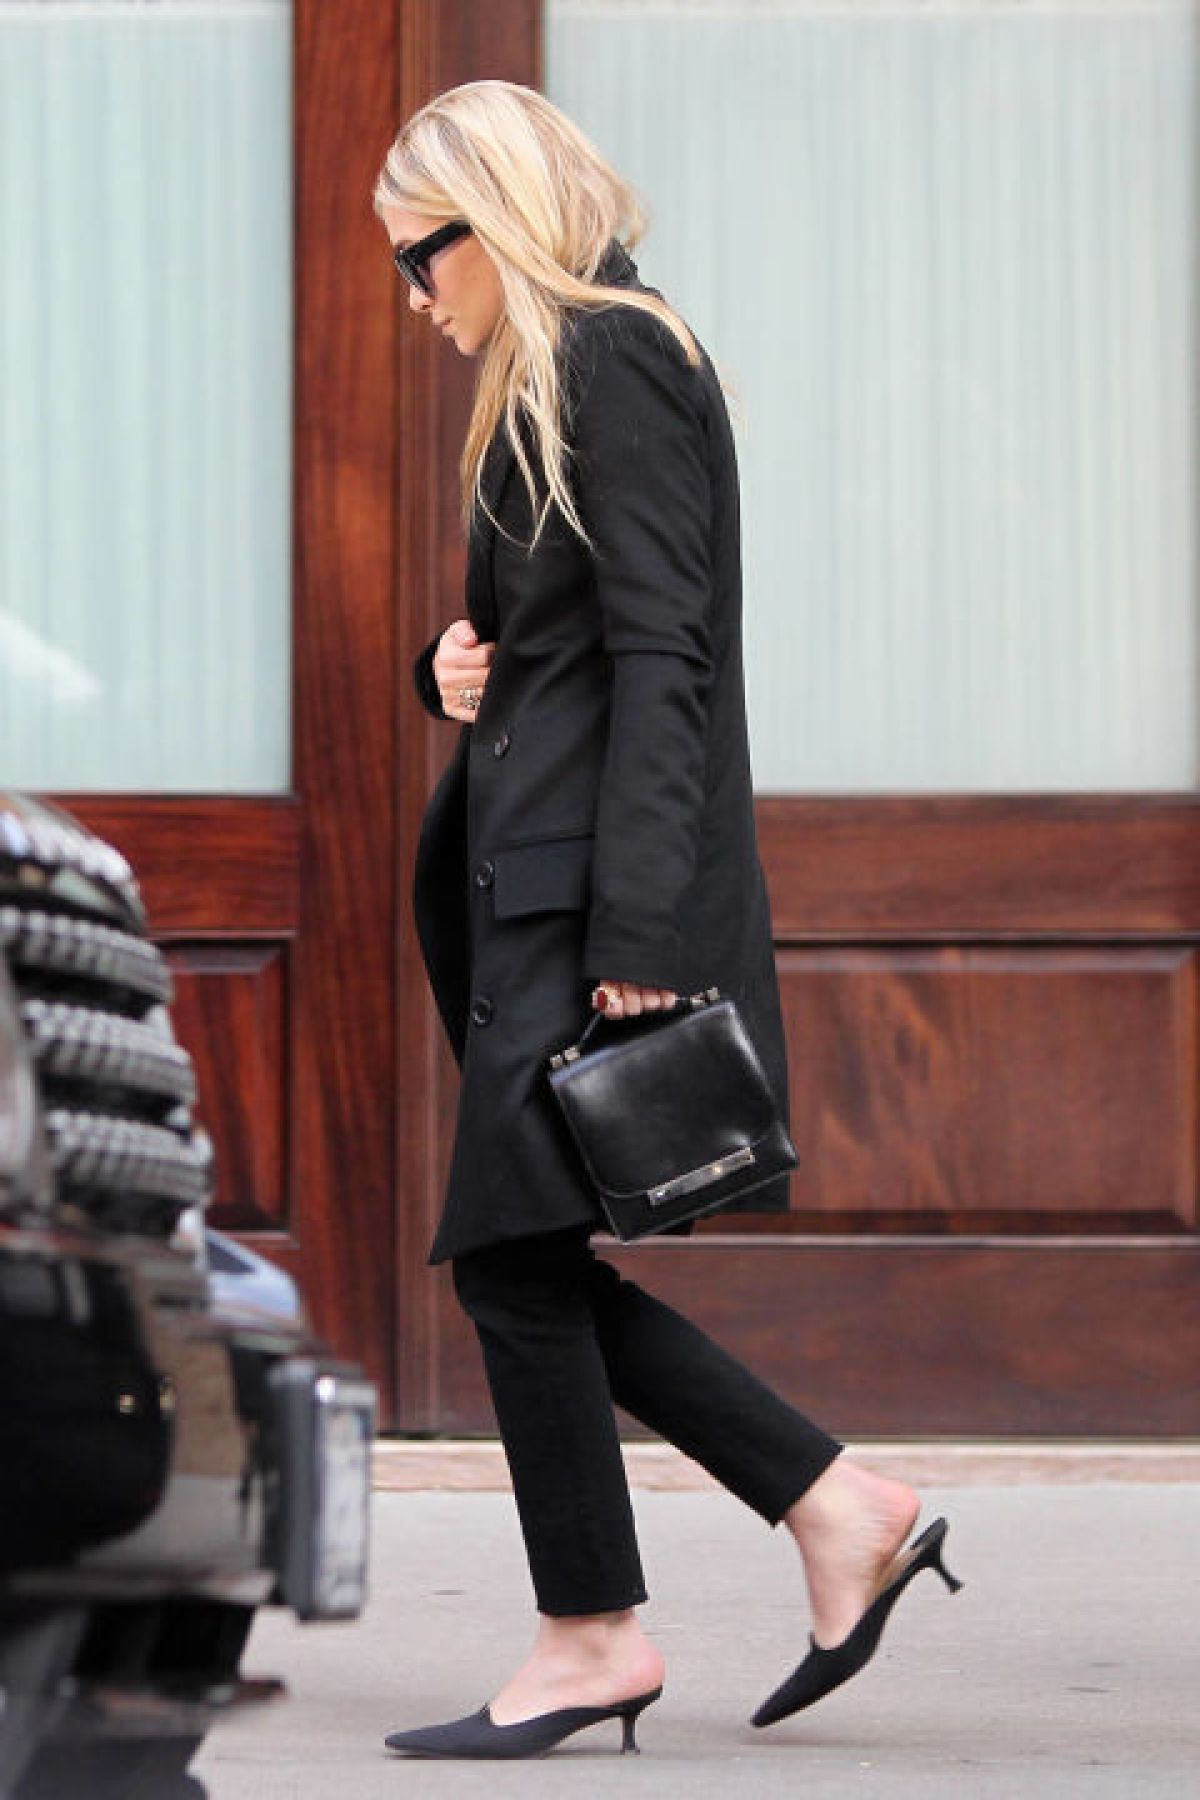 The mini-heeled pump is making a comeback as the daring yet demure shoe style to try.<br /><br /><br /> (Pictured: Mary-Kate Olsen)<br /><br /><br />